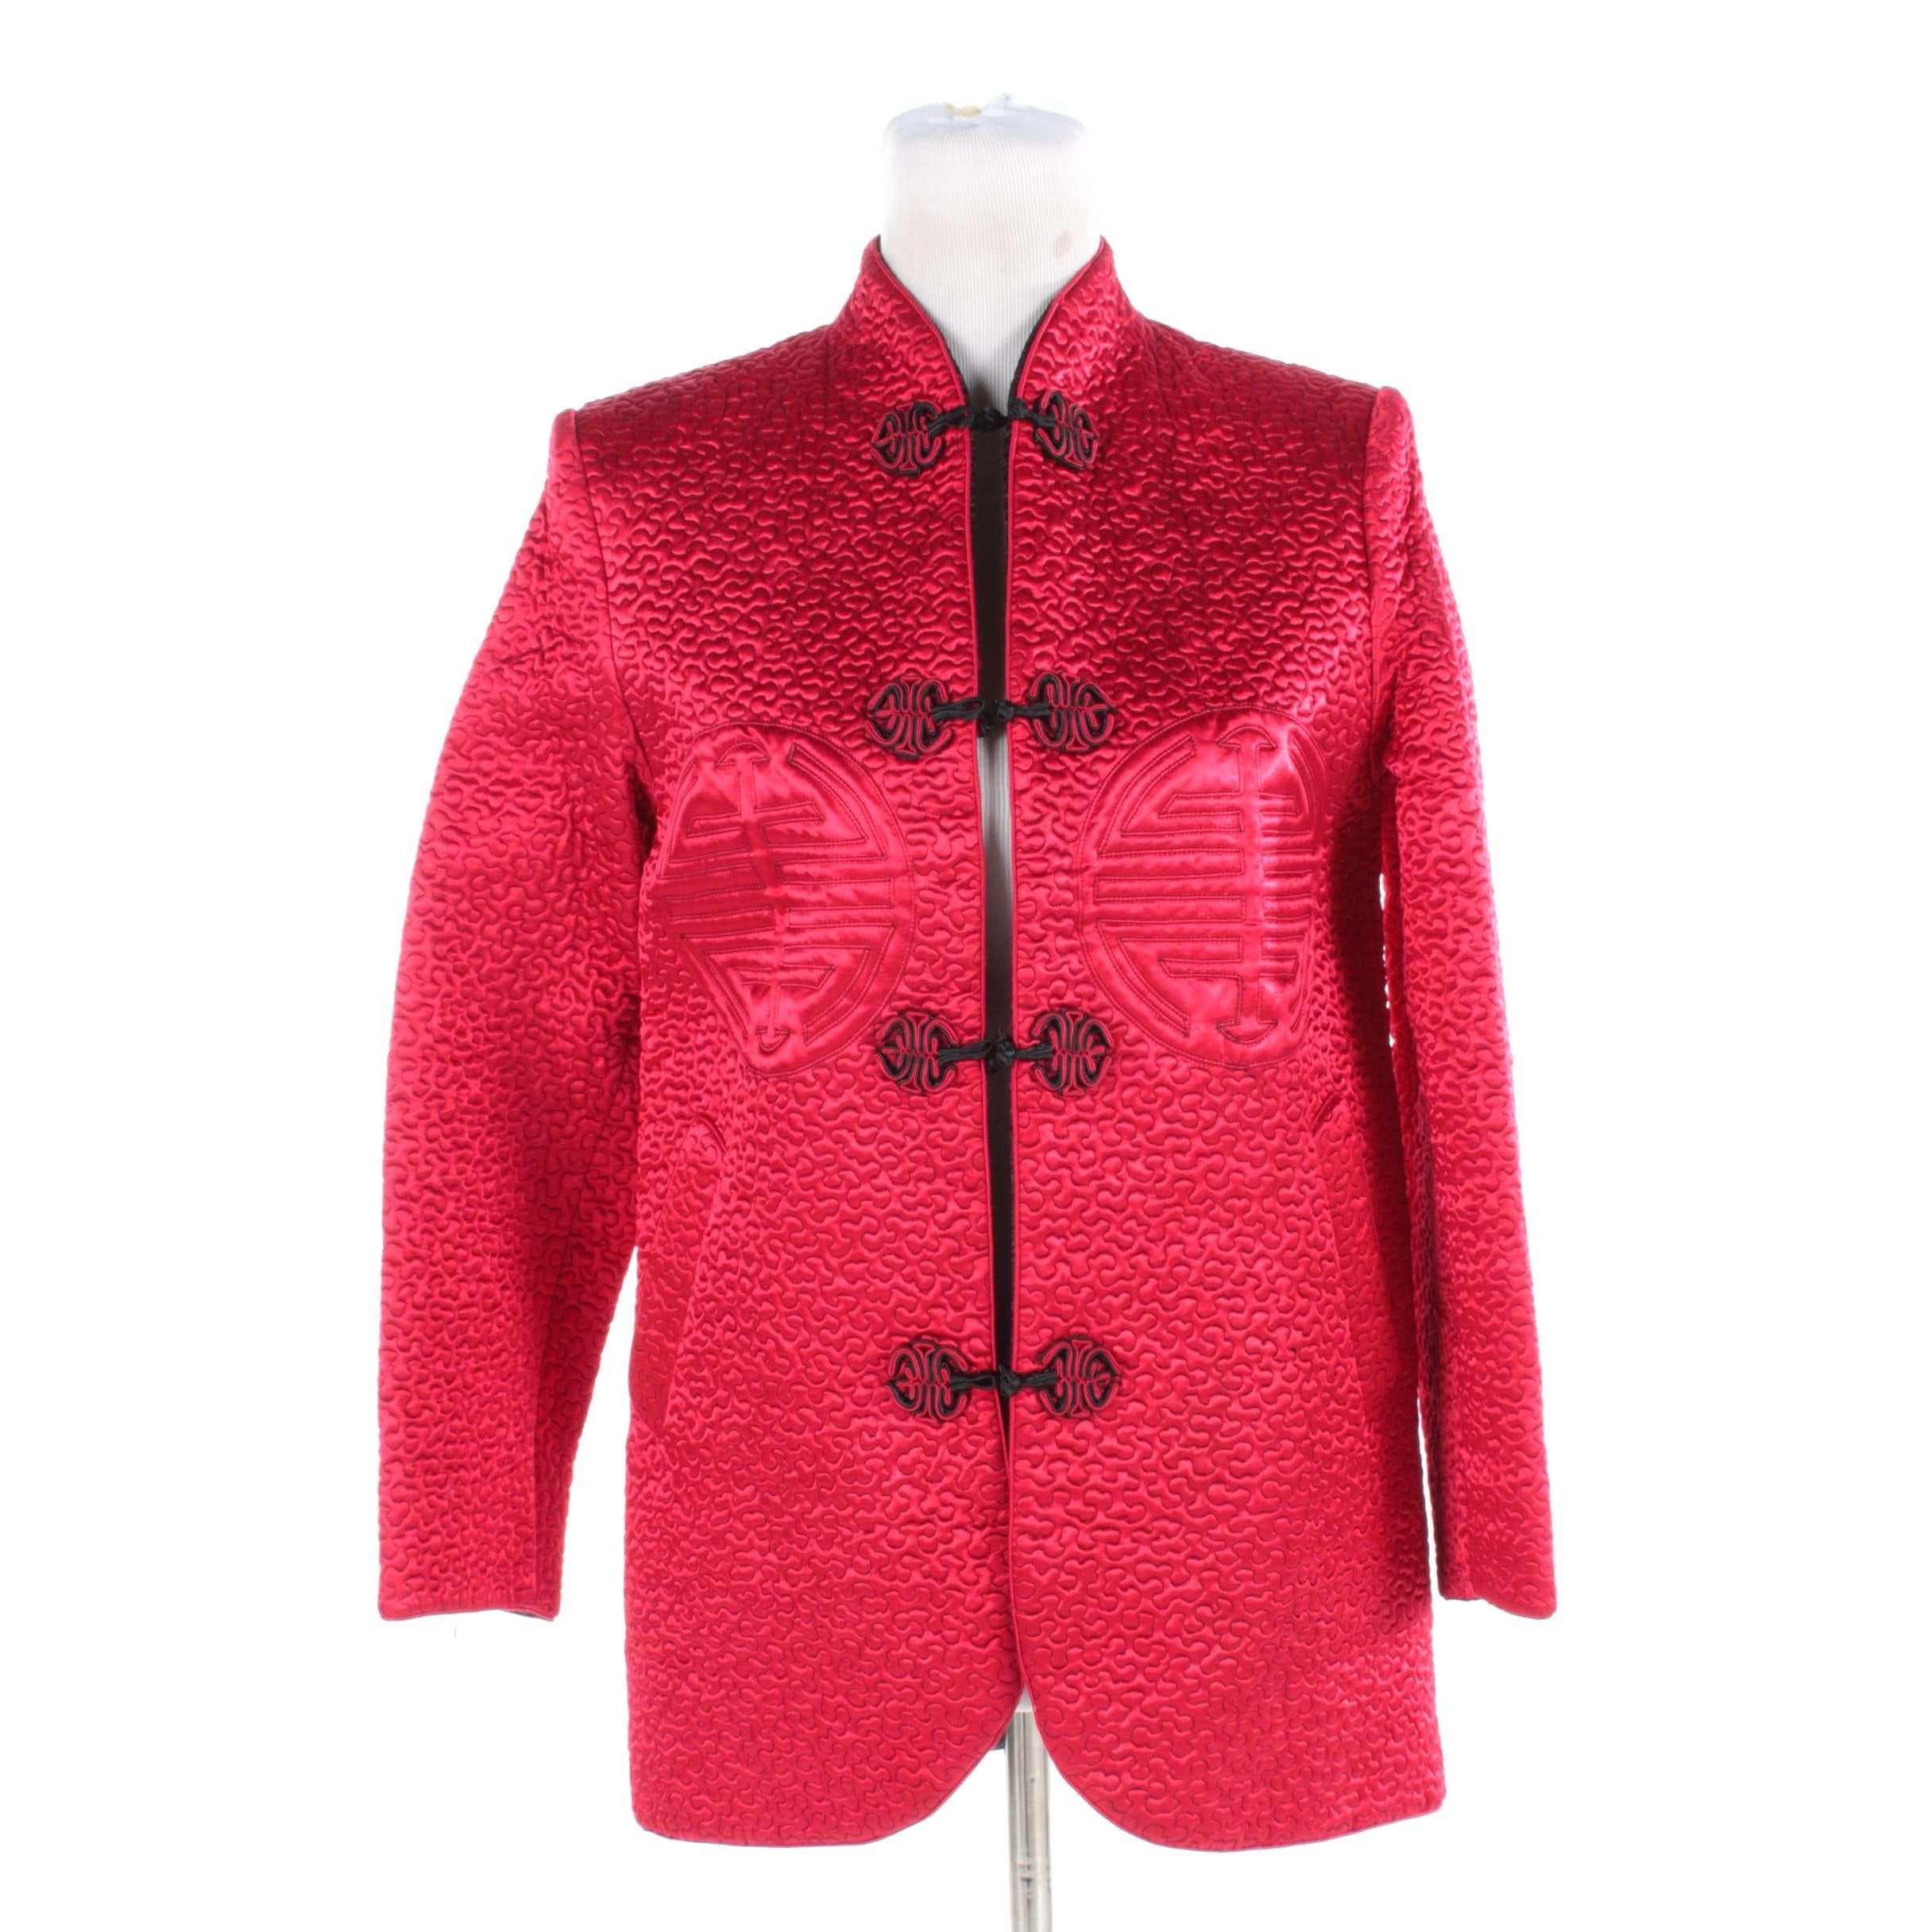 Women's Chinese Inspired Reversible Black and Red Quilted Satin Jacket